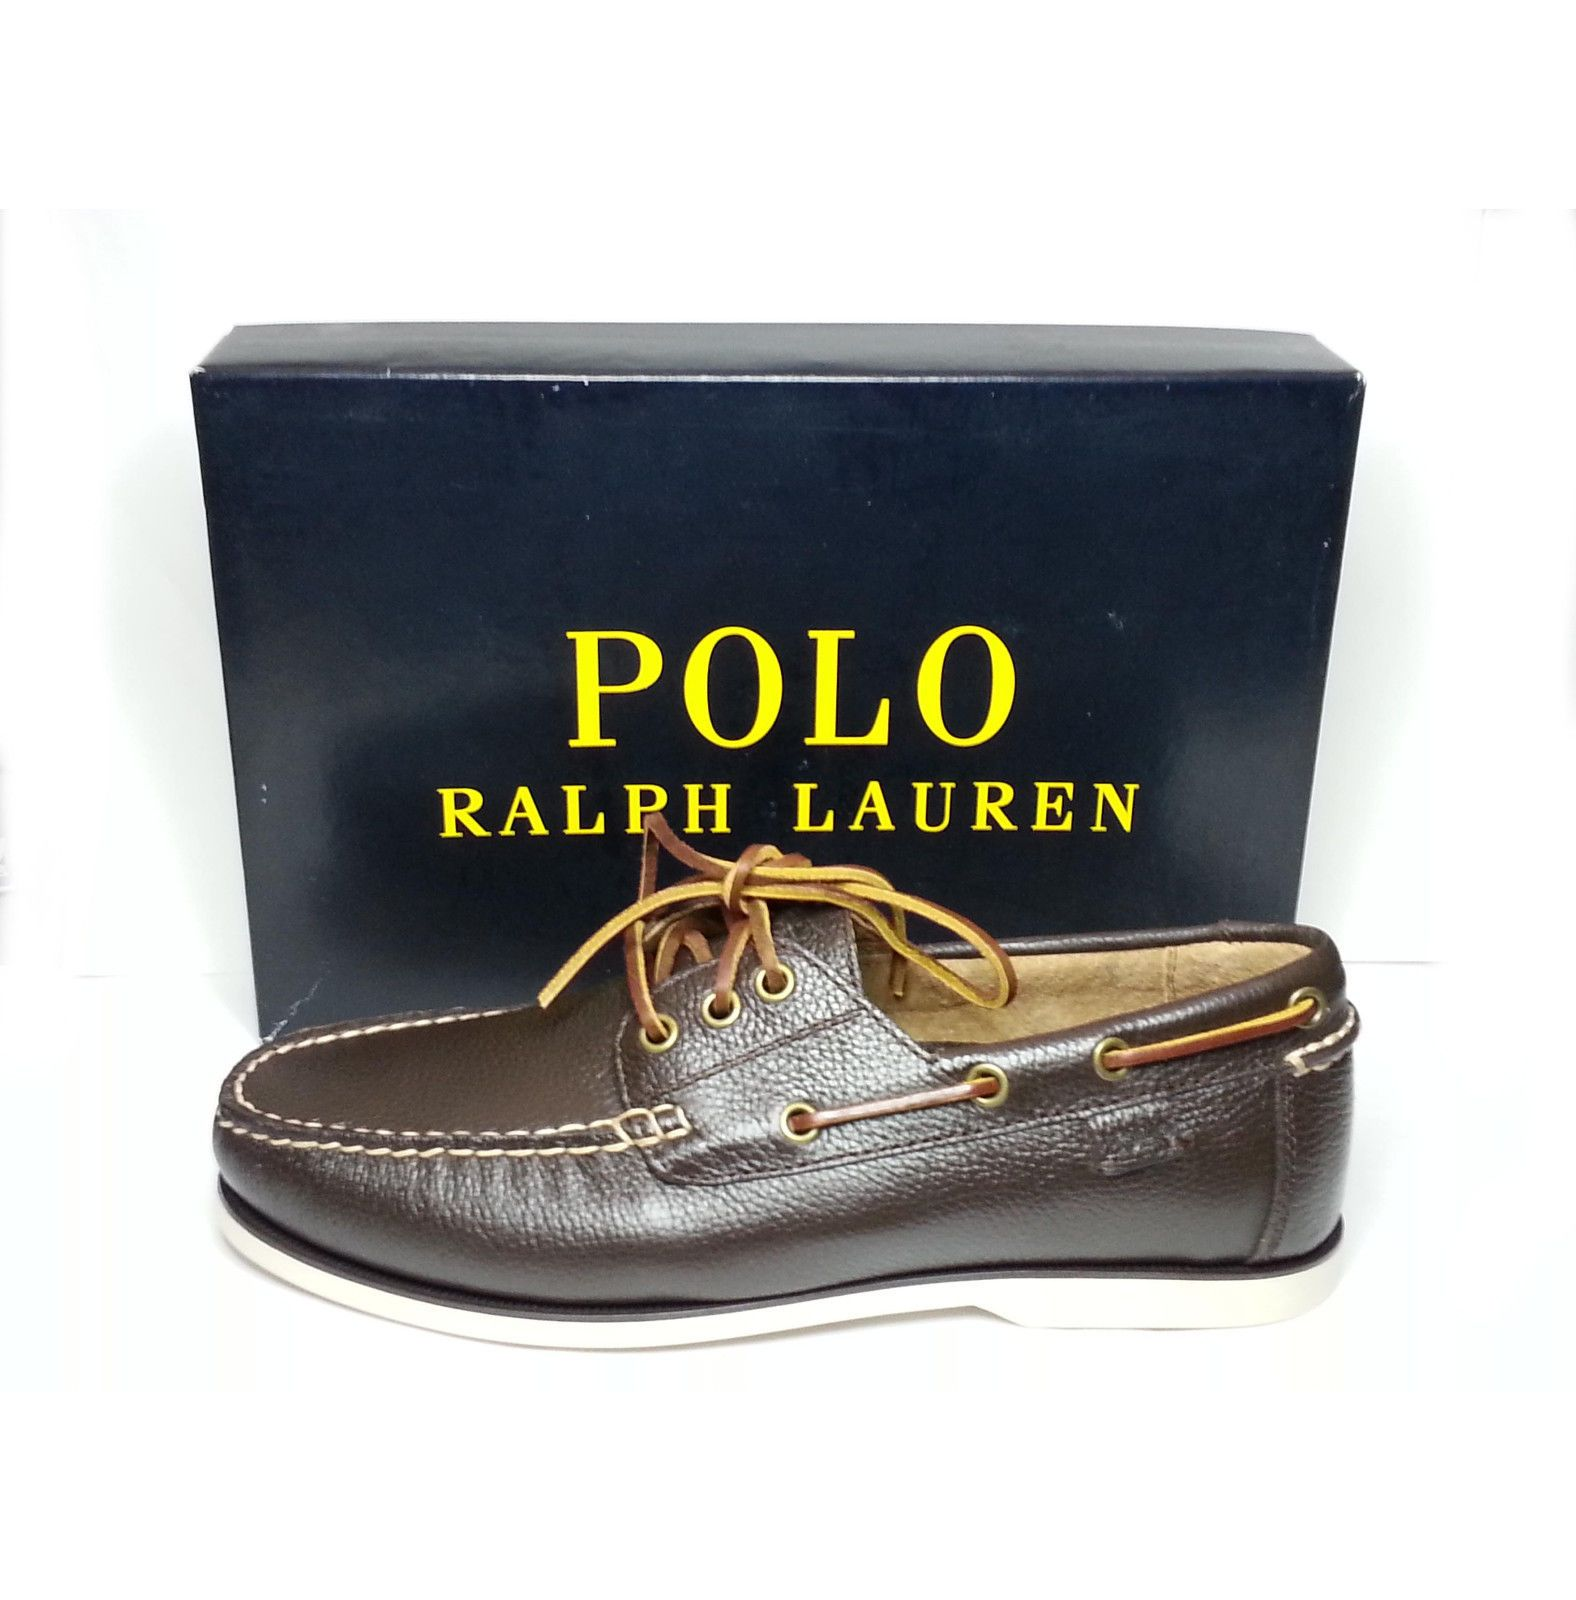 #shoes boots sneakers sandals men POLO Ralph Lauren BIENNE II DARK BROWN boat  shoes size